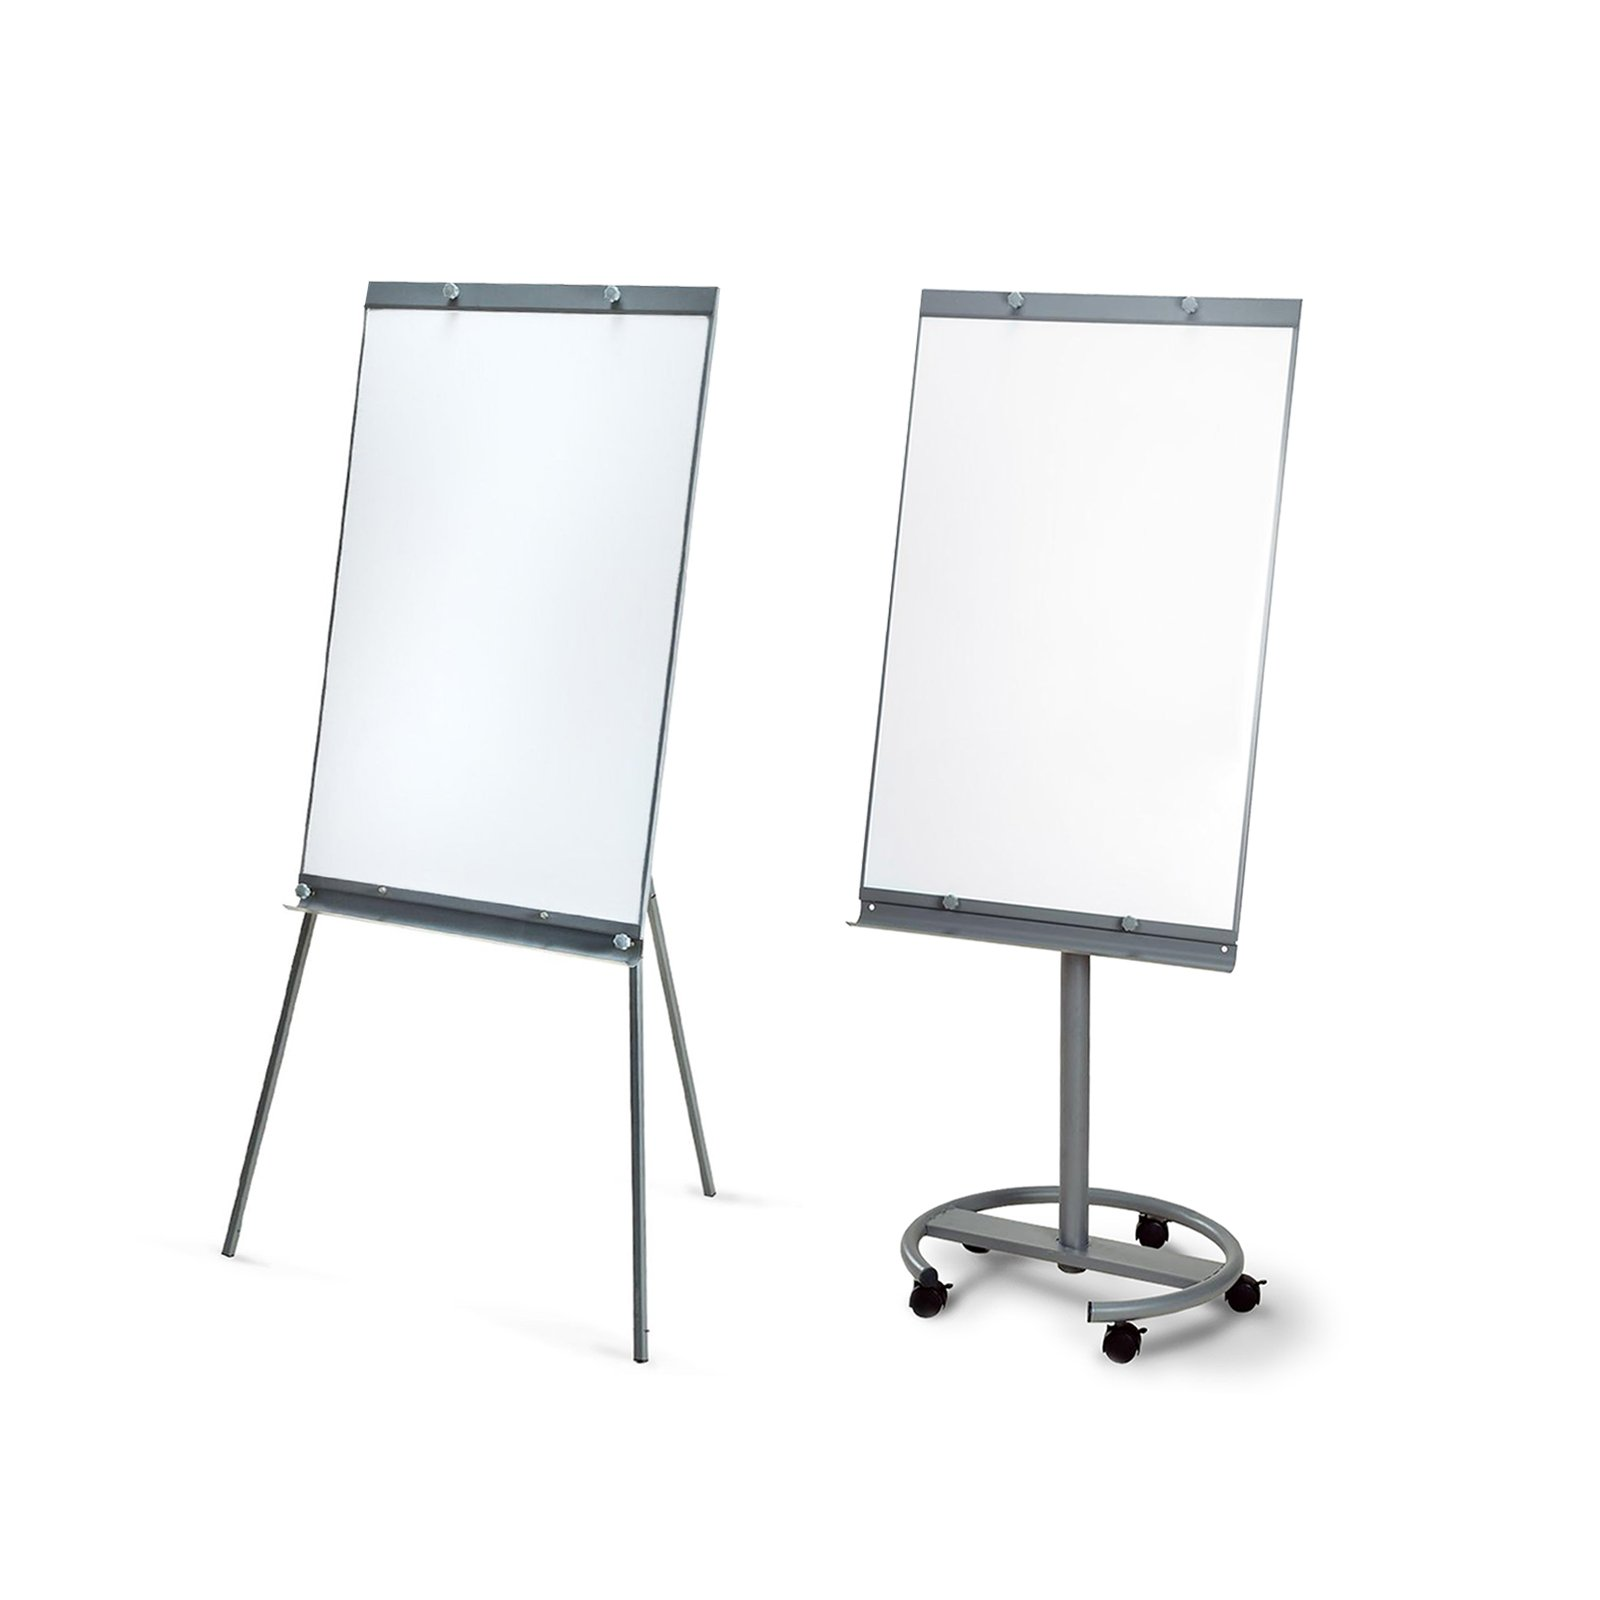 White Board Dry Erase Magnetic Bulletin Easel with Wheels | Height Adjustable Flip Chart with Side Arms | 40'' x 26'' (Writing Surface)